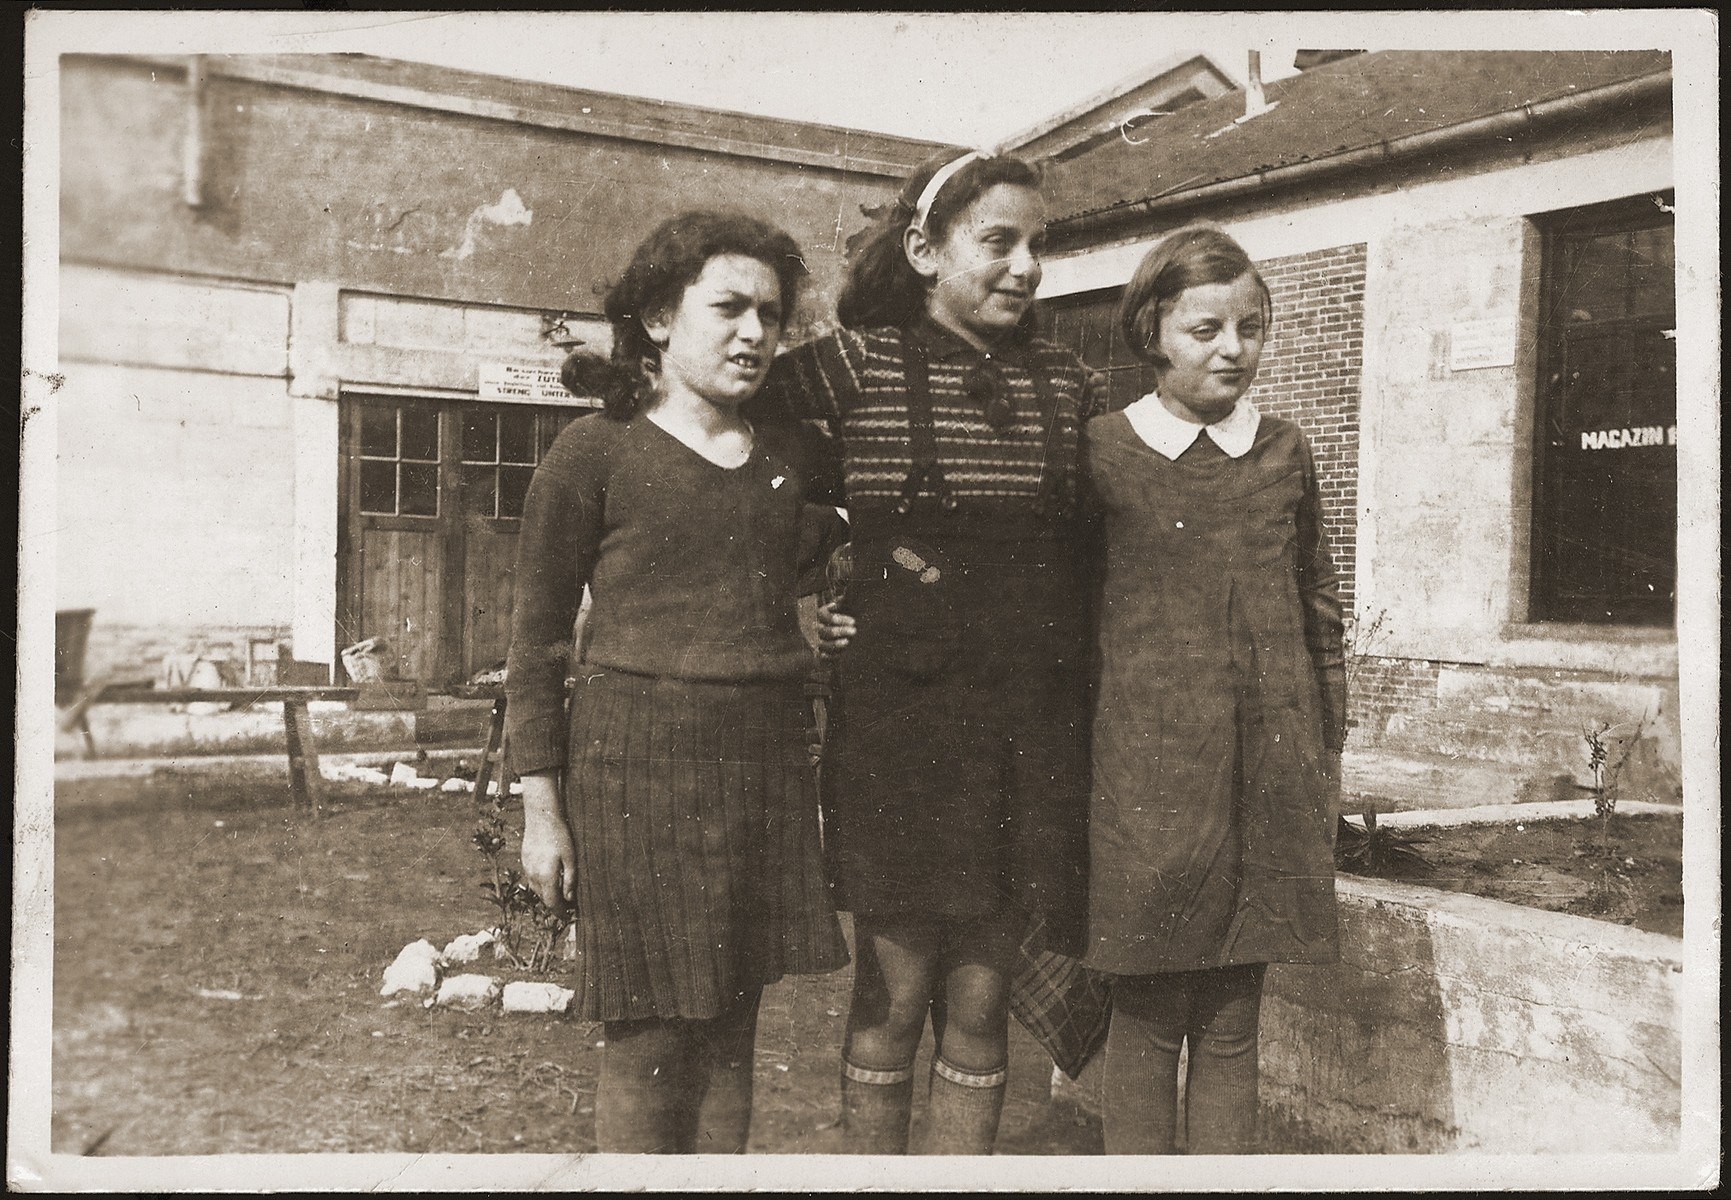 Three Jewish girls pose in the Pingliang refugee camp.  Hannelore Mansbacher is on the right, and her friend Rita (middle) is in the middle.